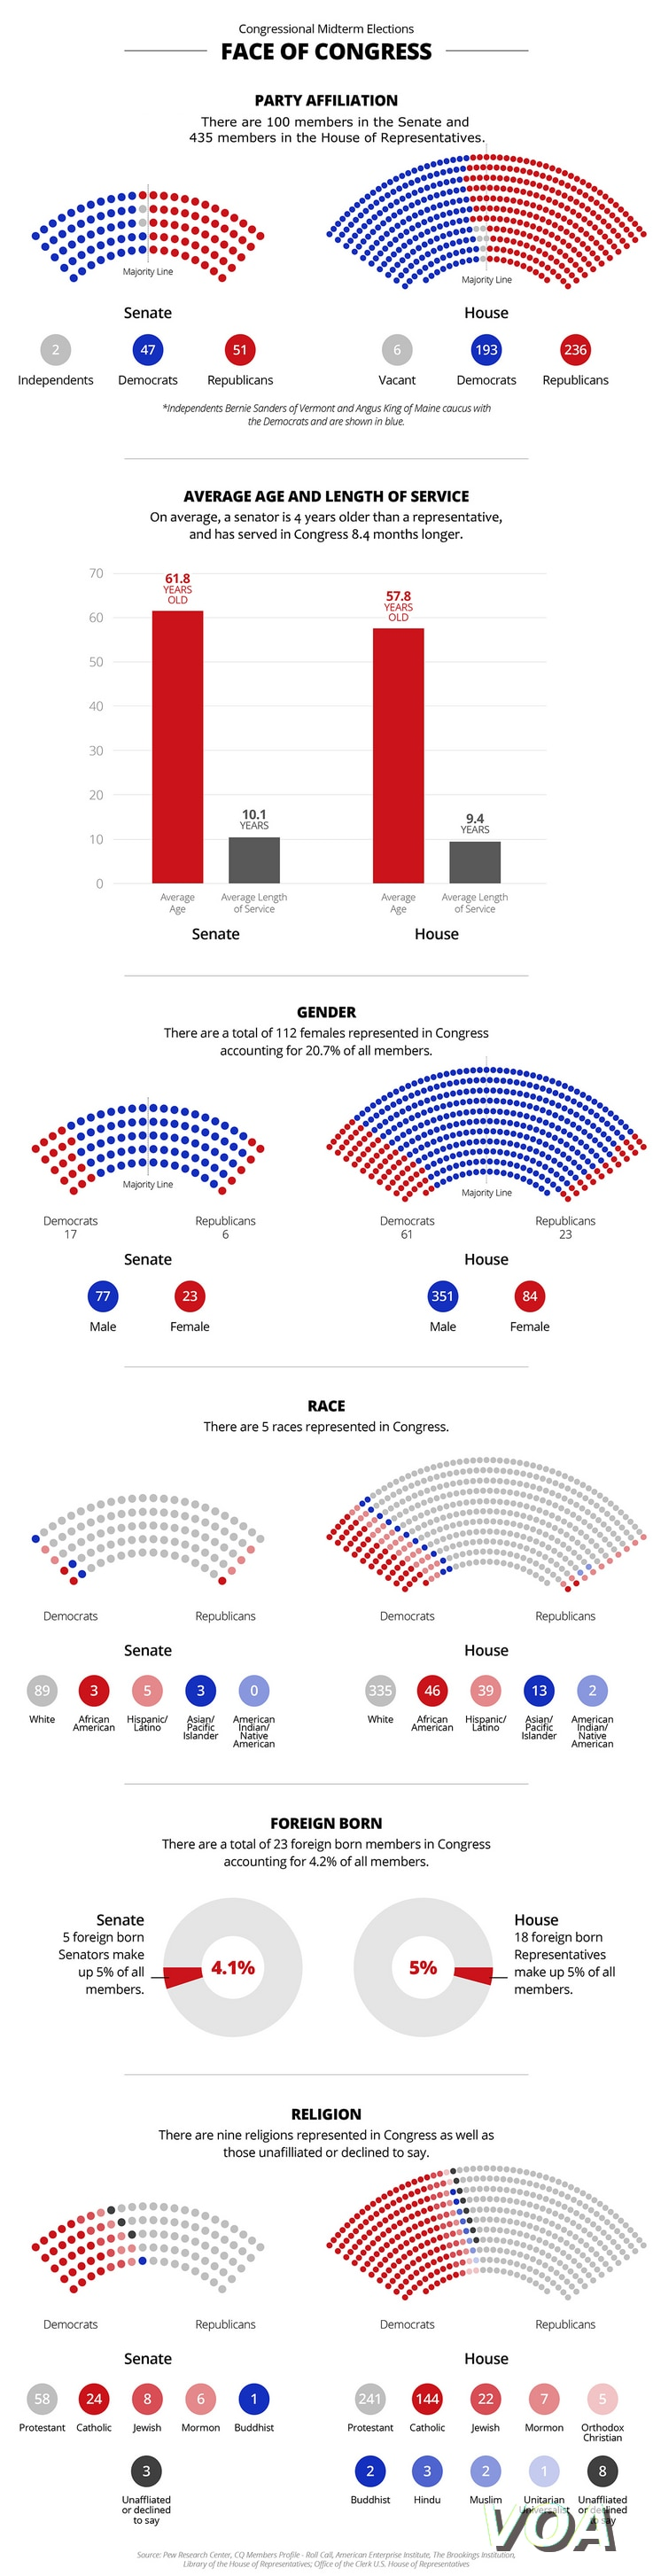 Revised Face of Congress graphic